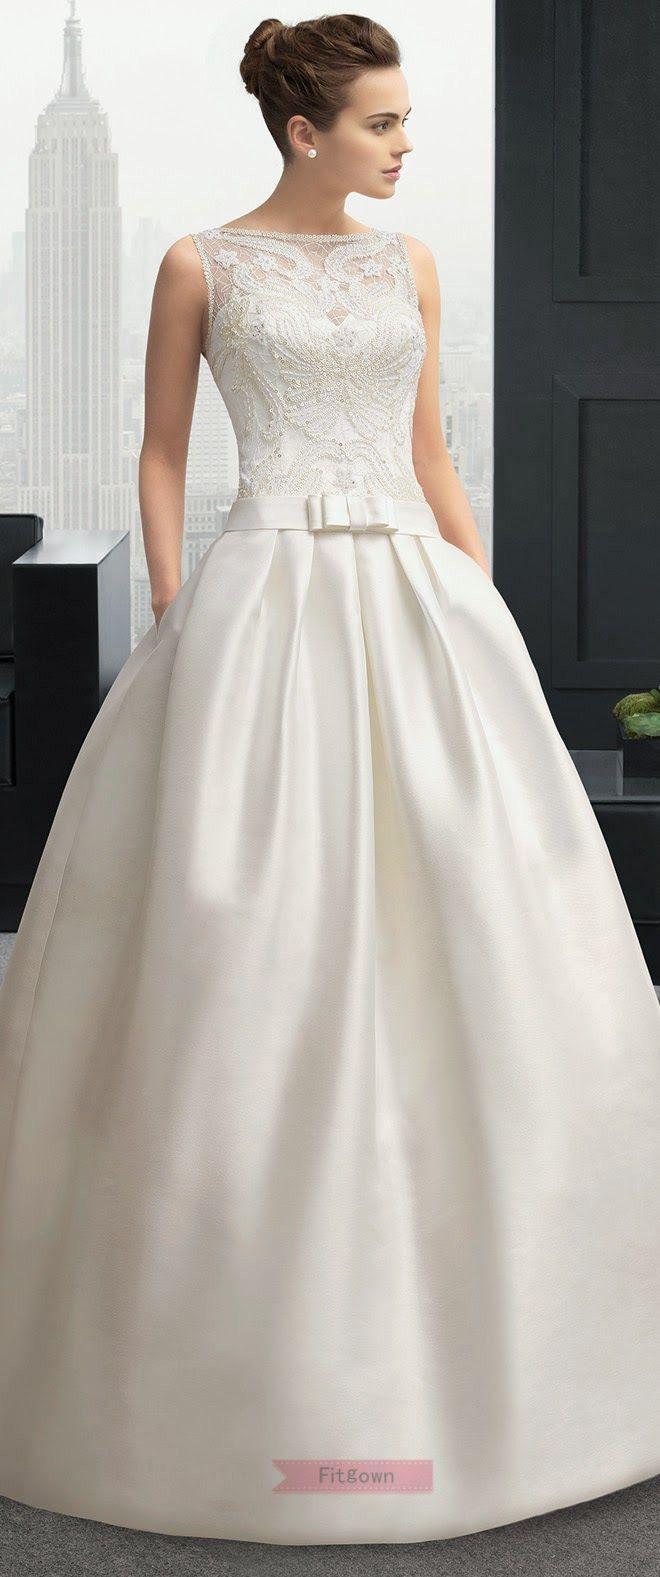 gorgeous bride wedding dress #gorgeousgowns